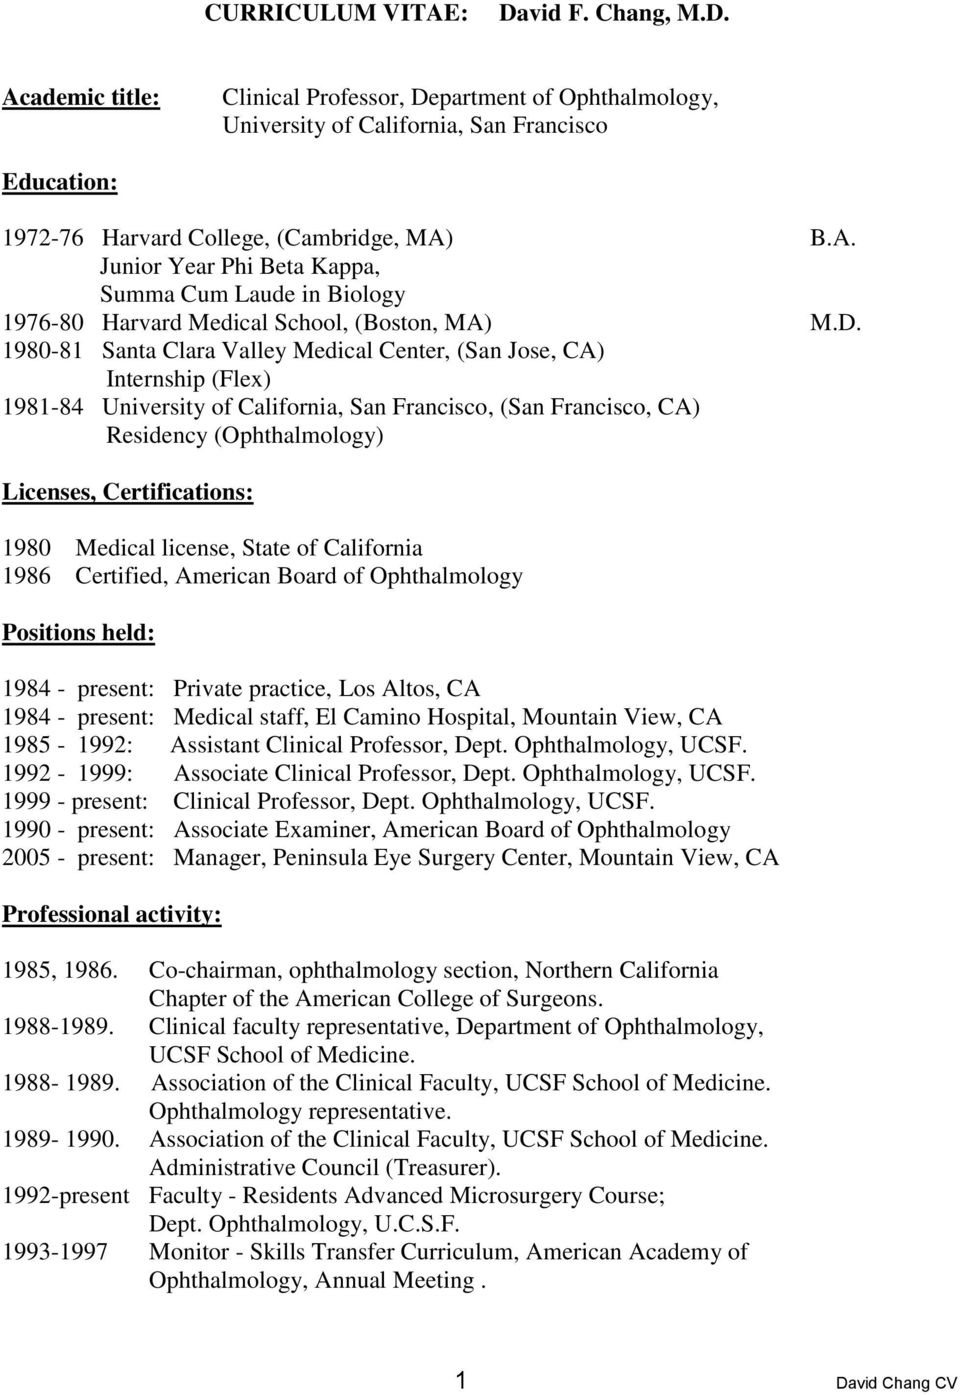 1980 Medical license, State of California 1986 Certified, American Board of Ophthalmology Positions held: 1984 - present: Private practice, Los Altos, CA 1984 - present: Medical staff, El Camino